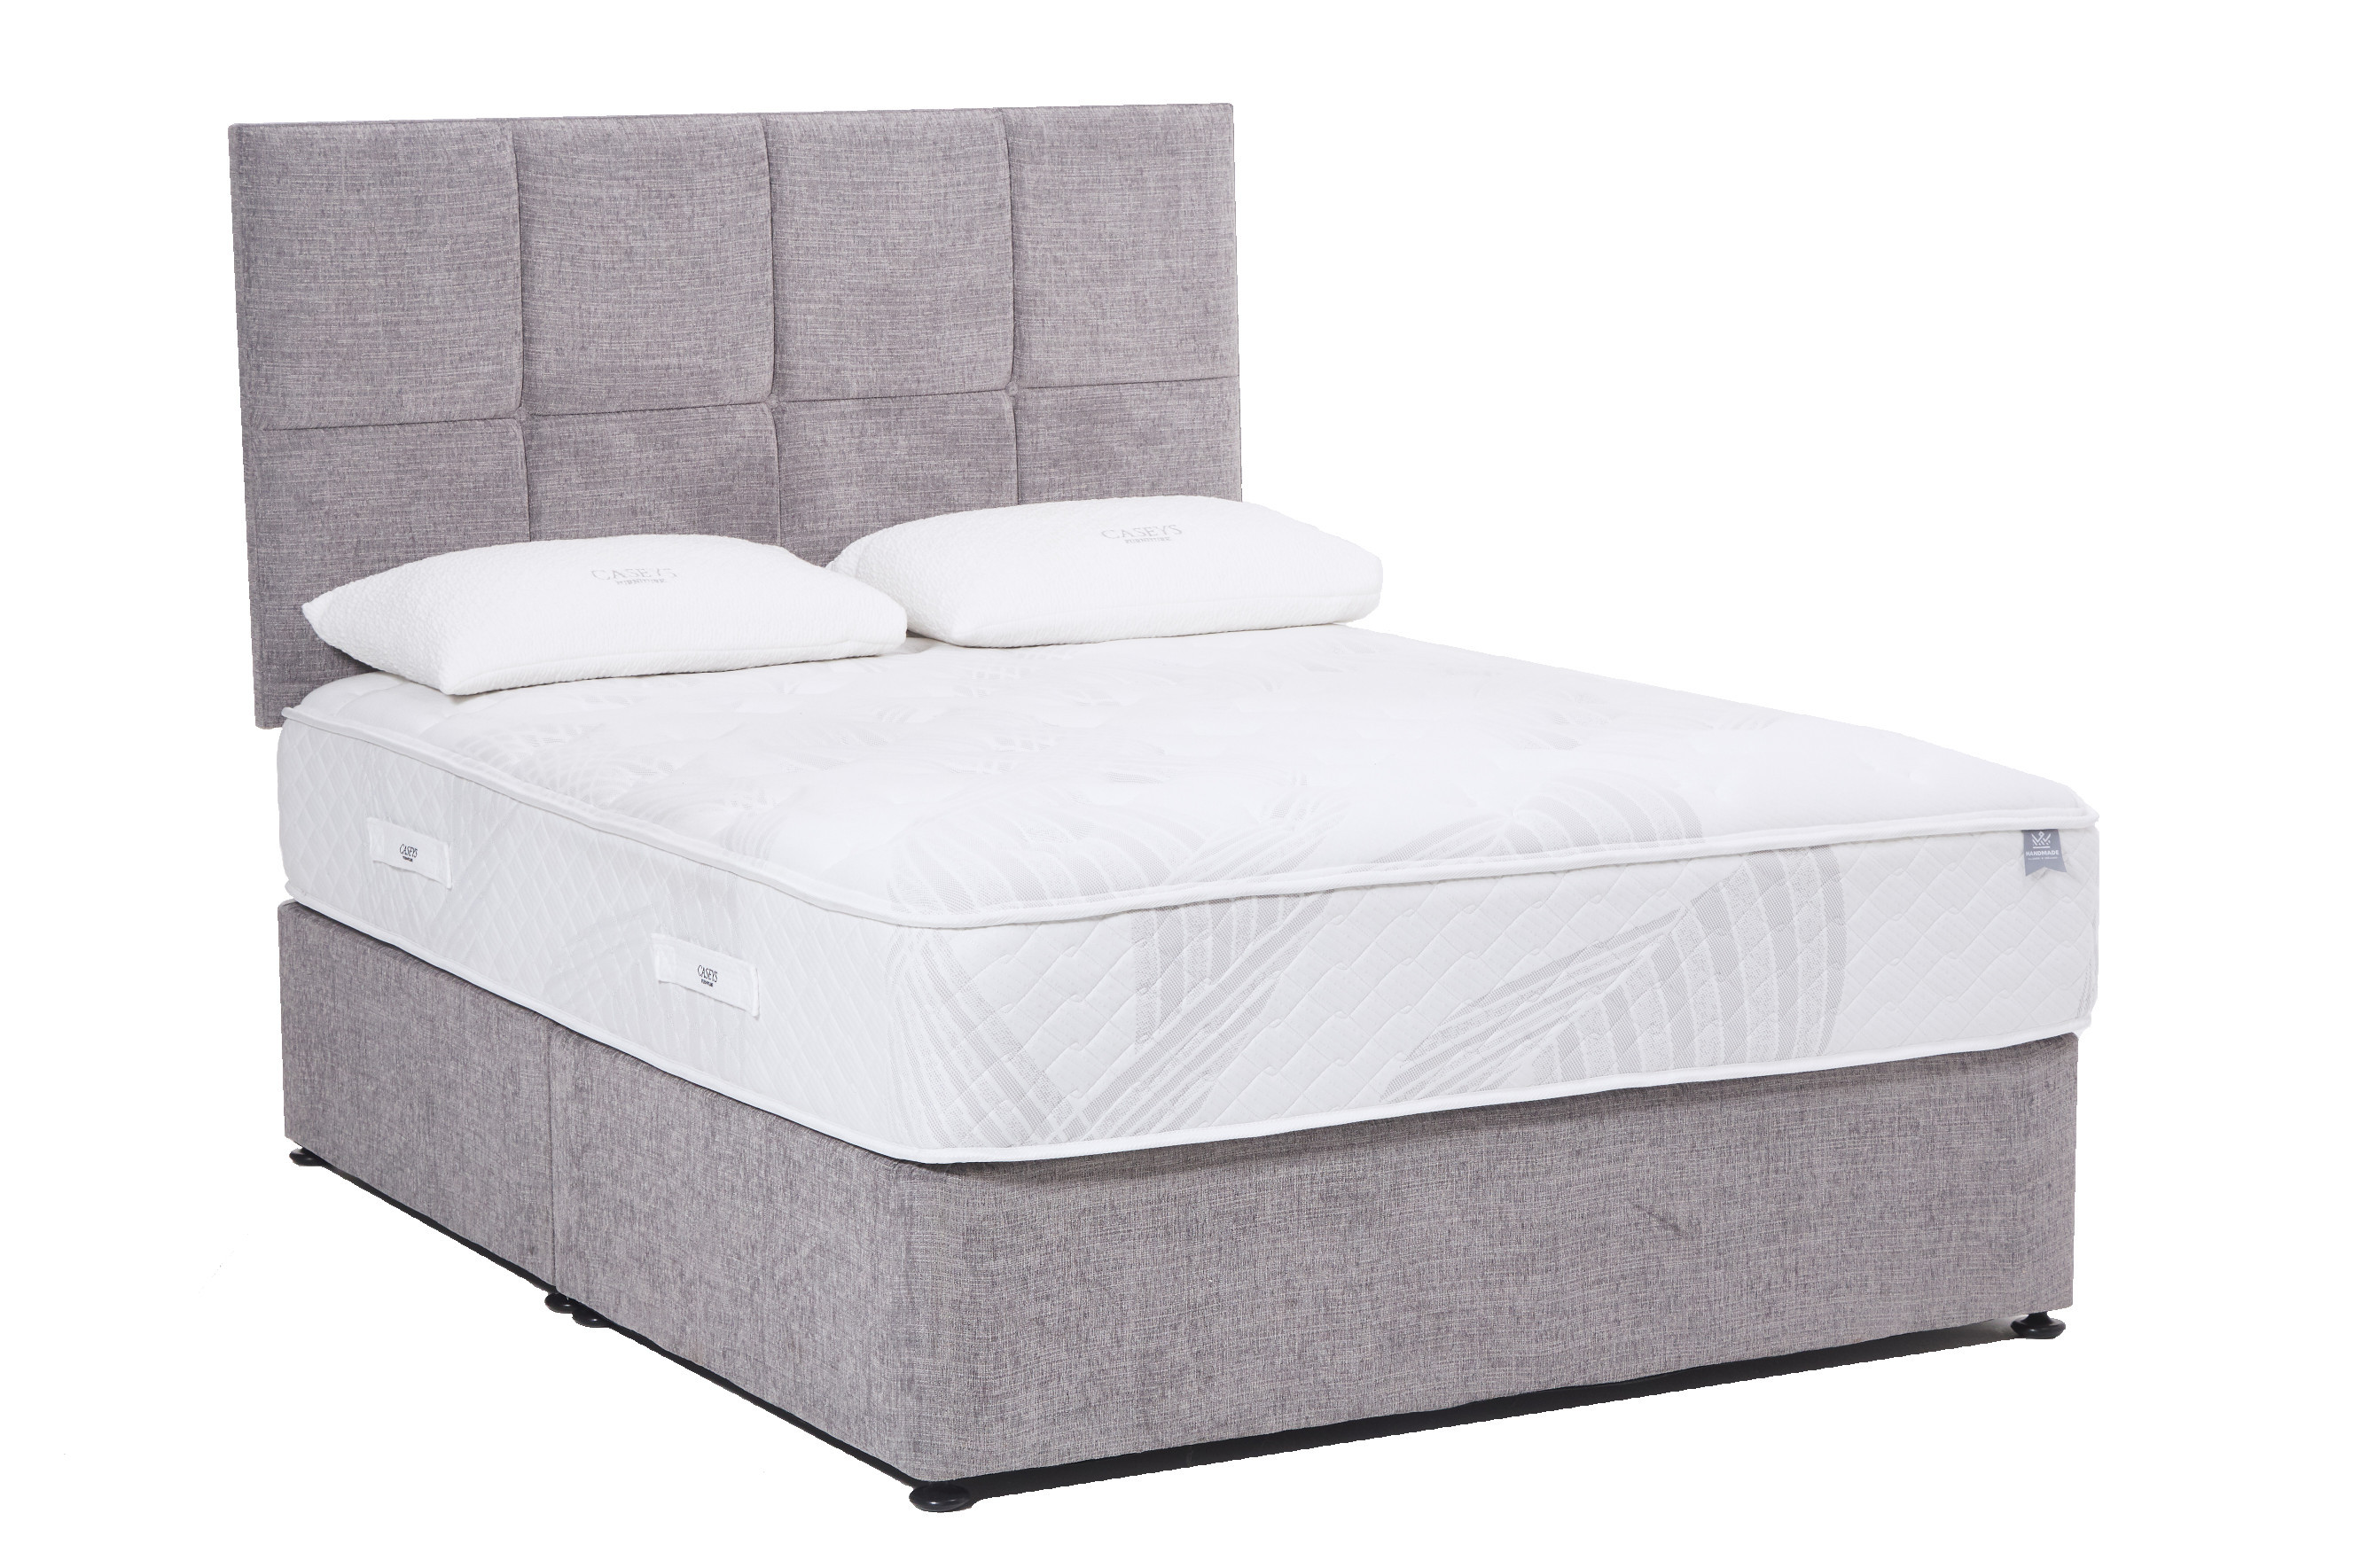 King Koil Lee Mattress and Divan